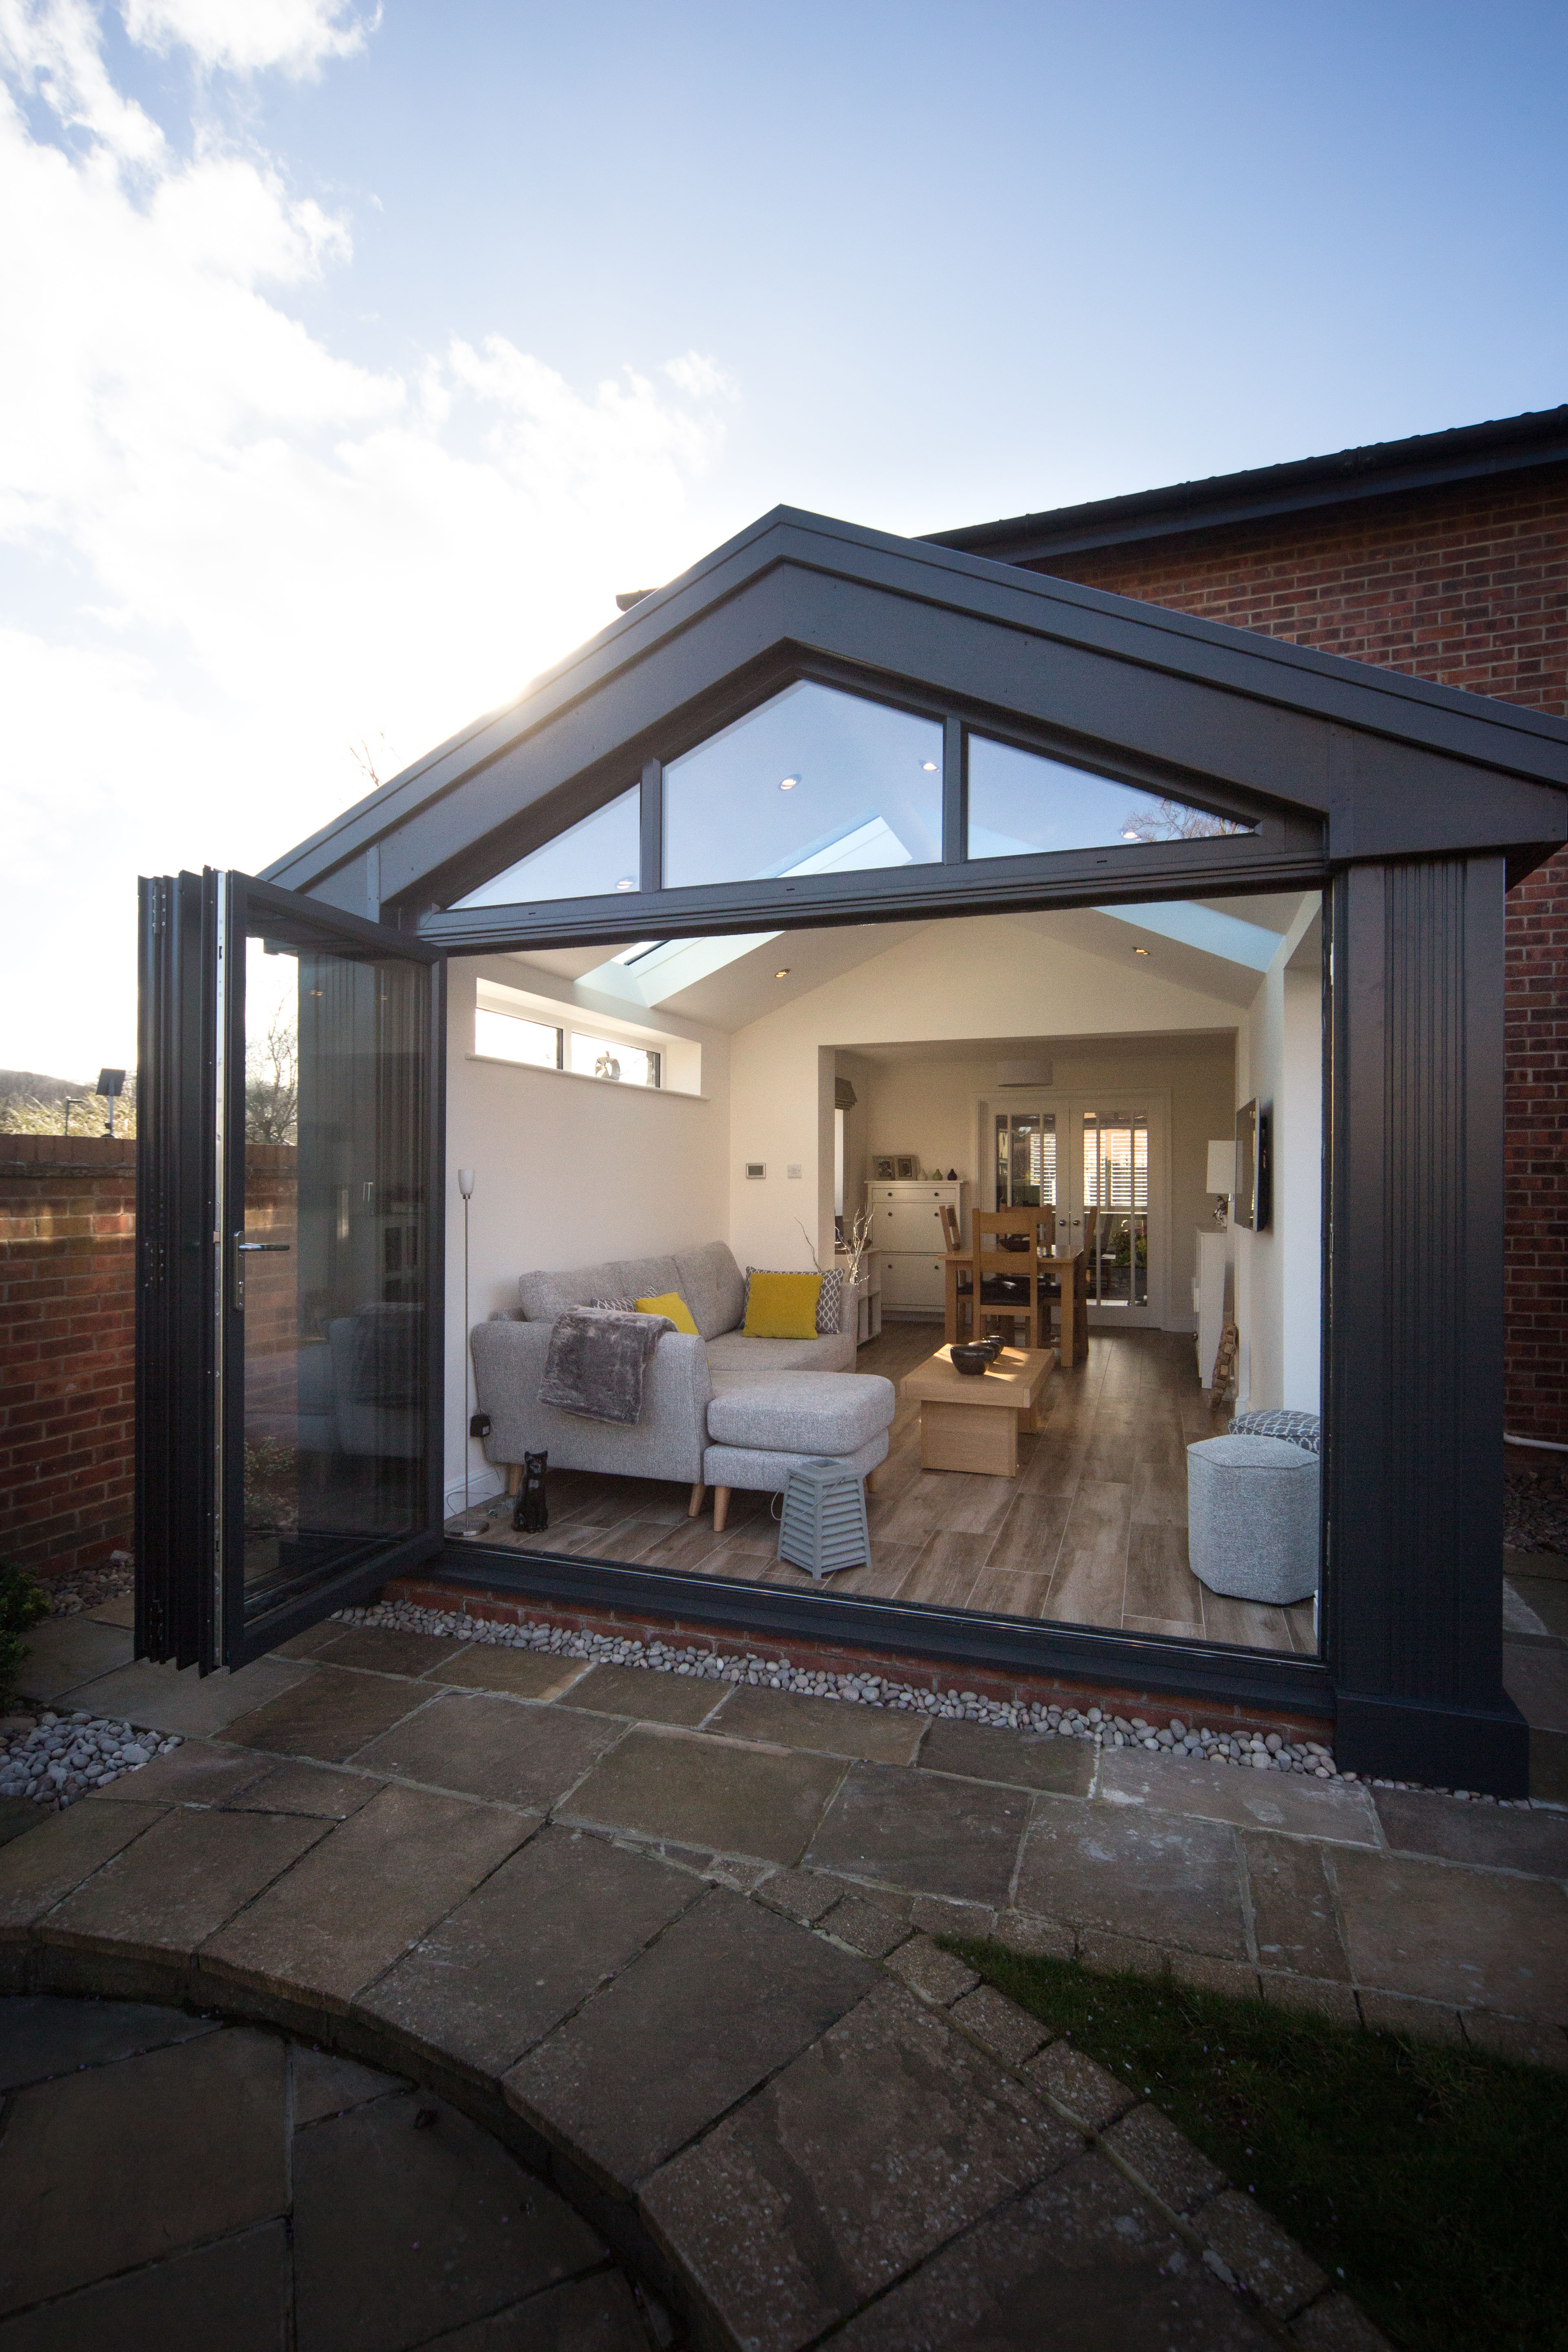 7 Stunning Home Extension Ideas: This Stunning Gable Replacement Roof Features The Ultraroof Tiled Roof. The Gable Frame A